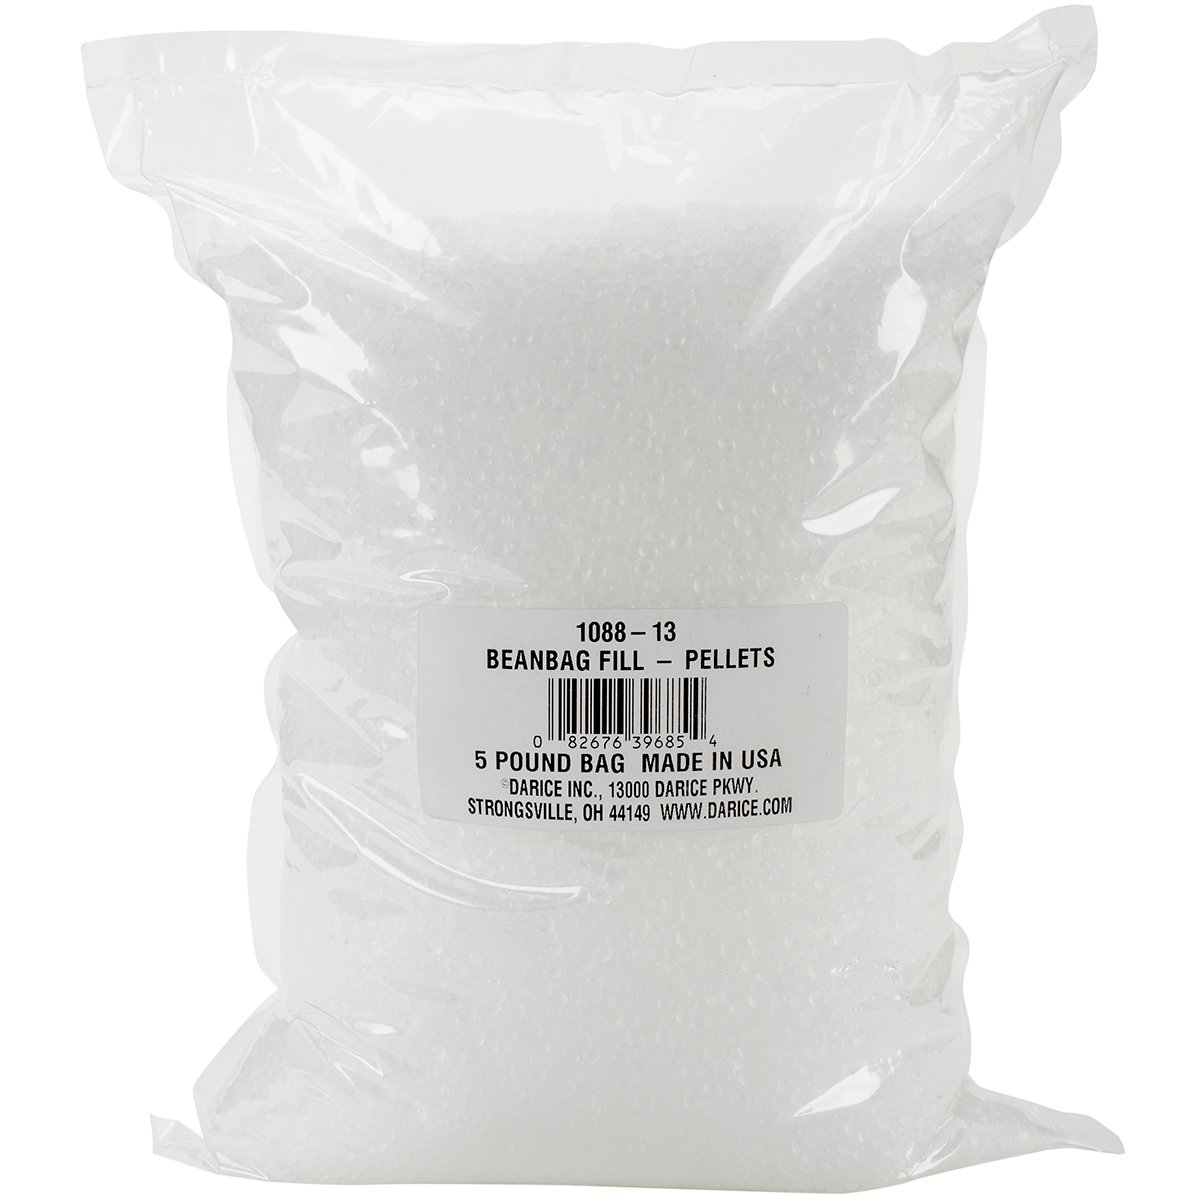 Darice 1088-13 Bean Bag Filling: Plastic Pellets, 5 Pounds, White